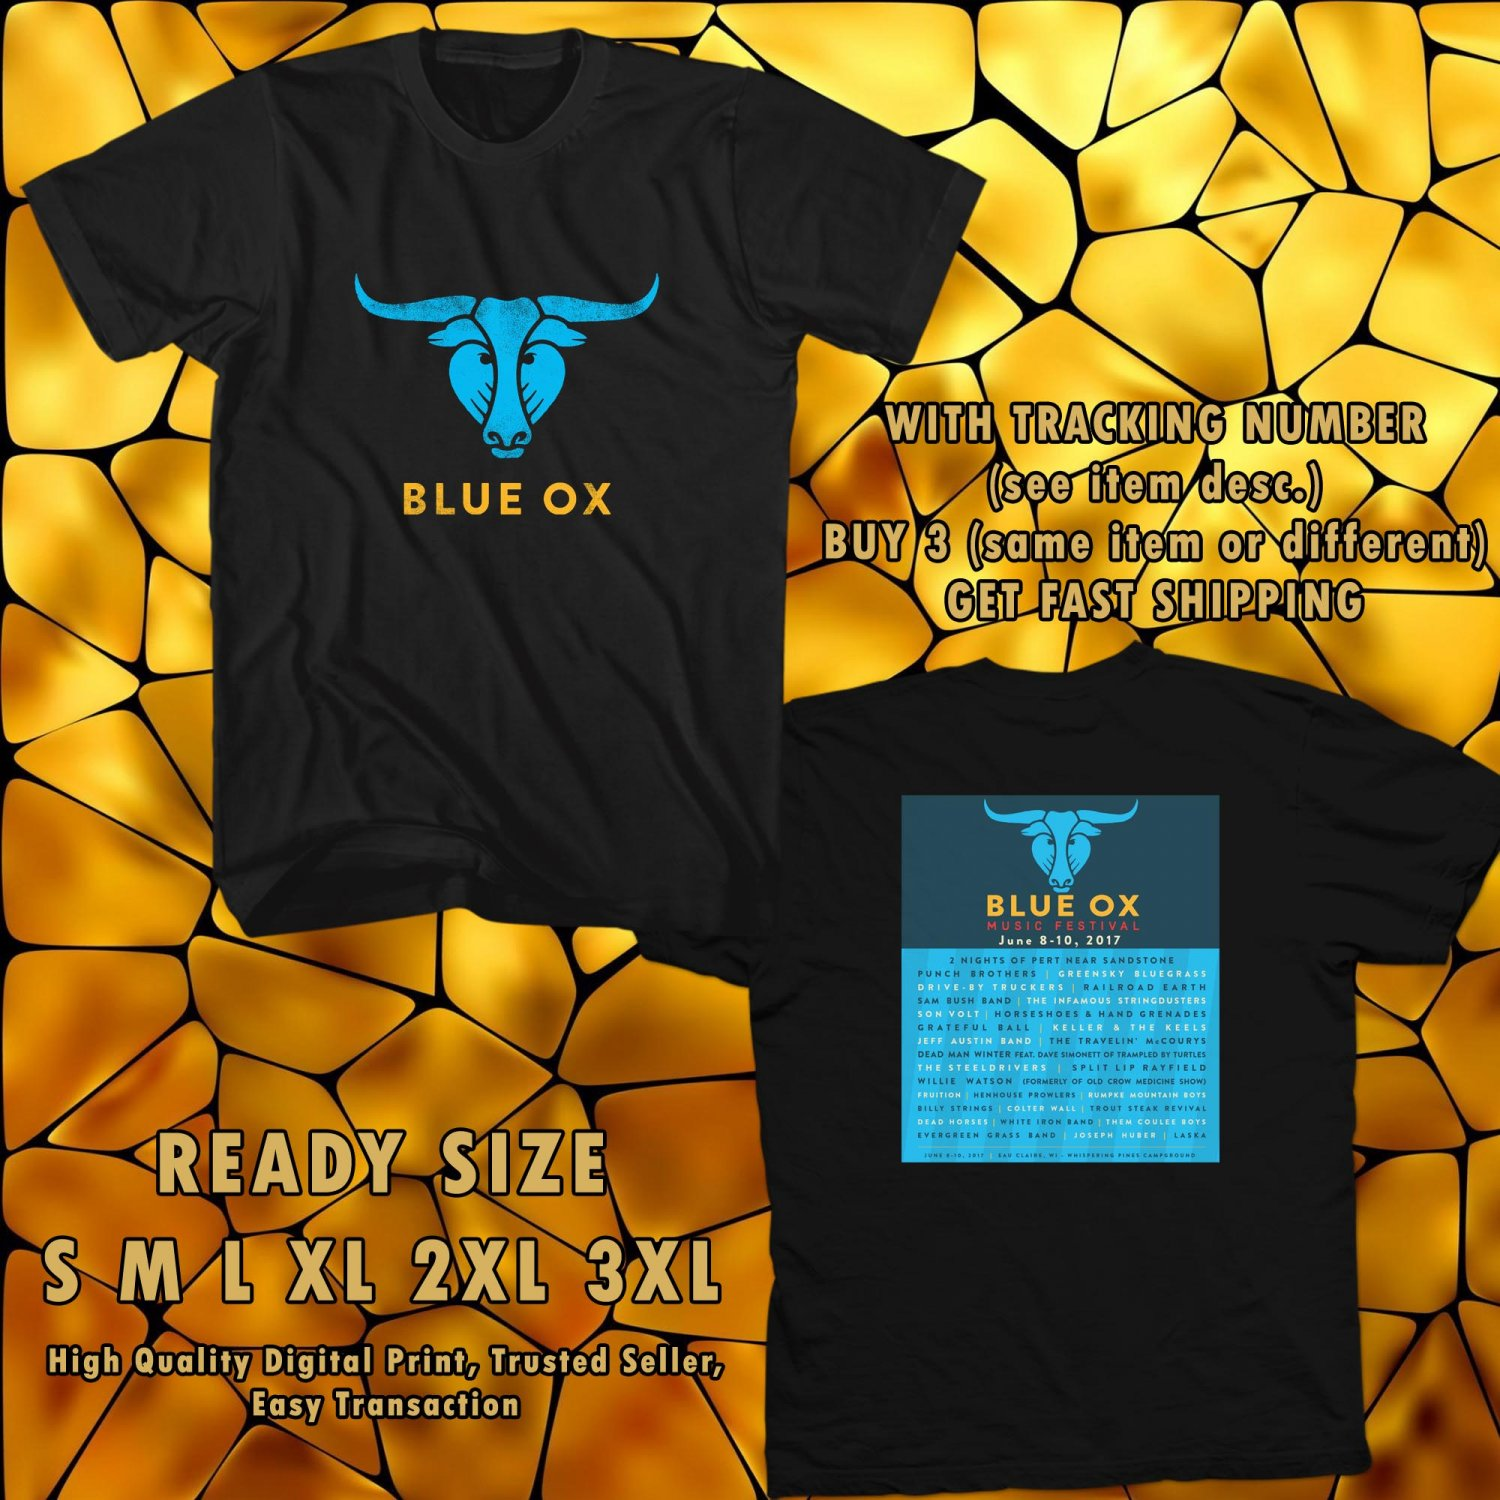 NEW BLUE OX FESTIVAL 2017 black TEE 2 SIDE DMTR